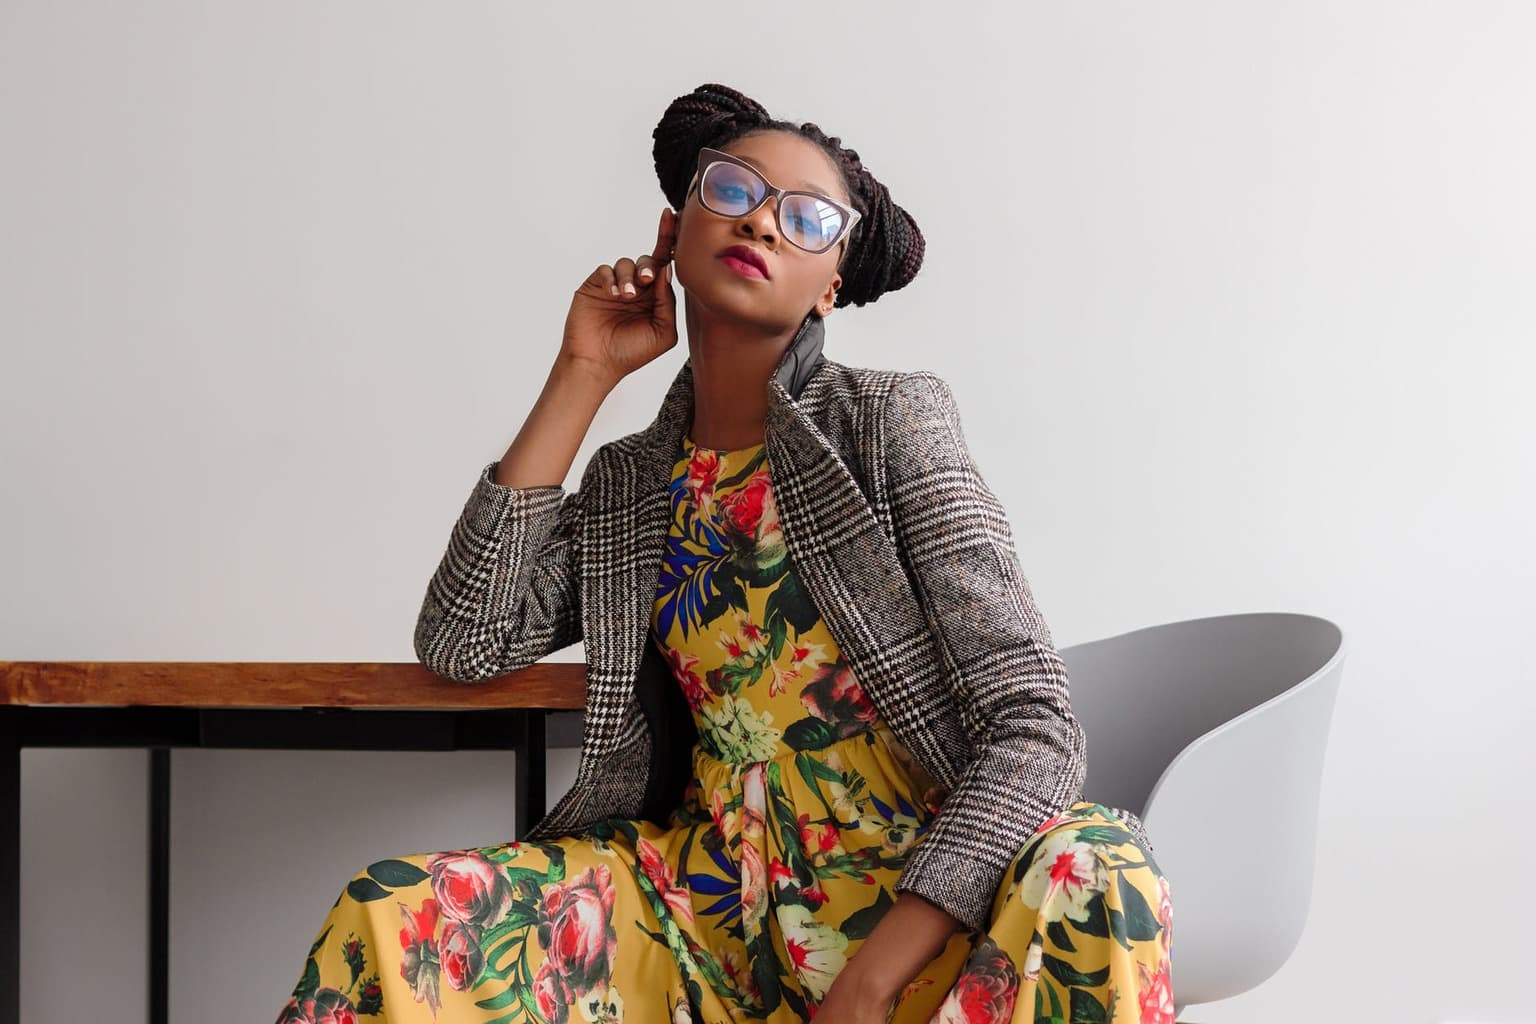 Woman sitting on a chair with a plaid blazer and a yellow dress and glasses